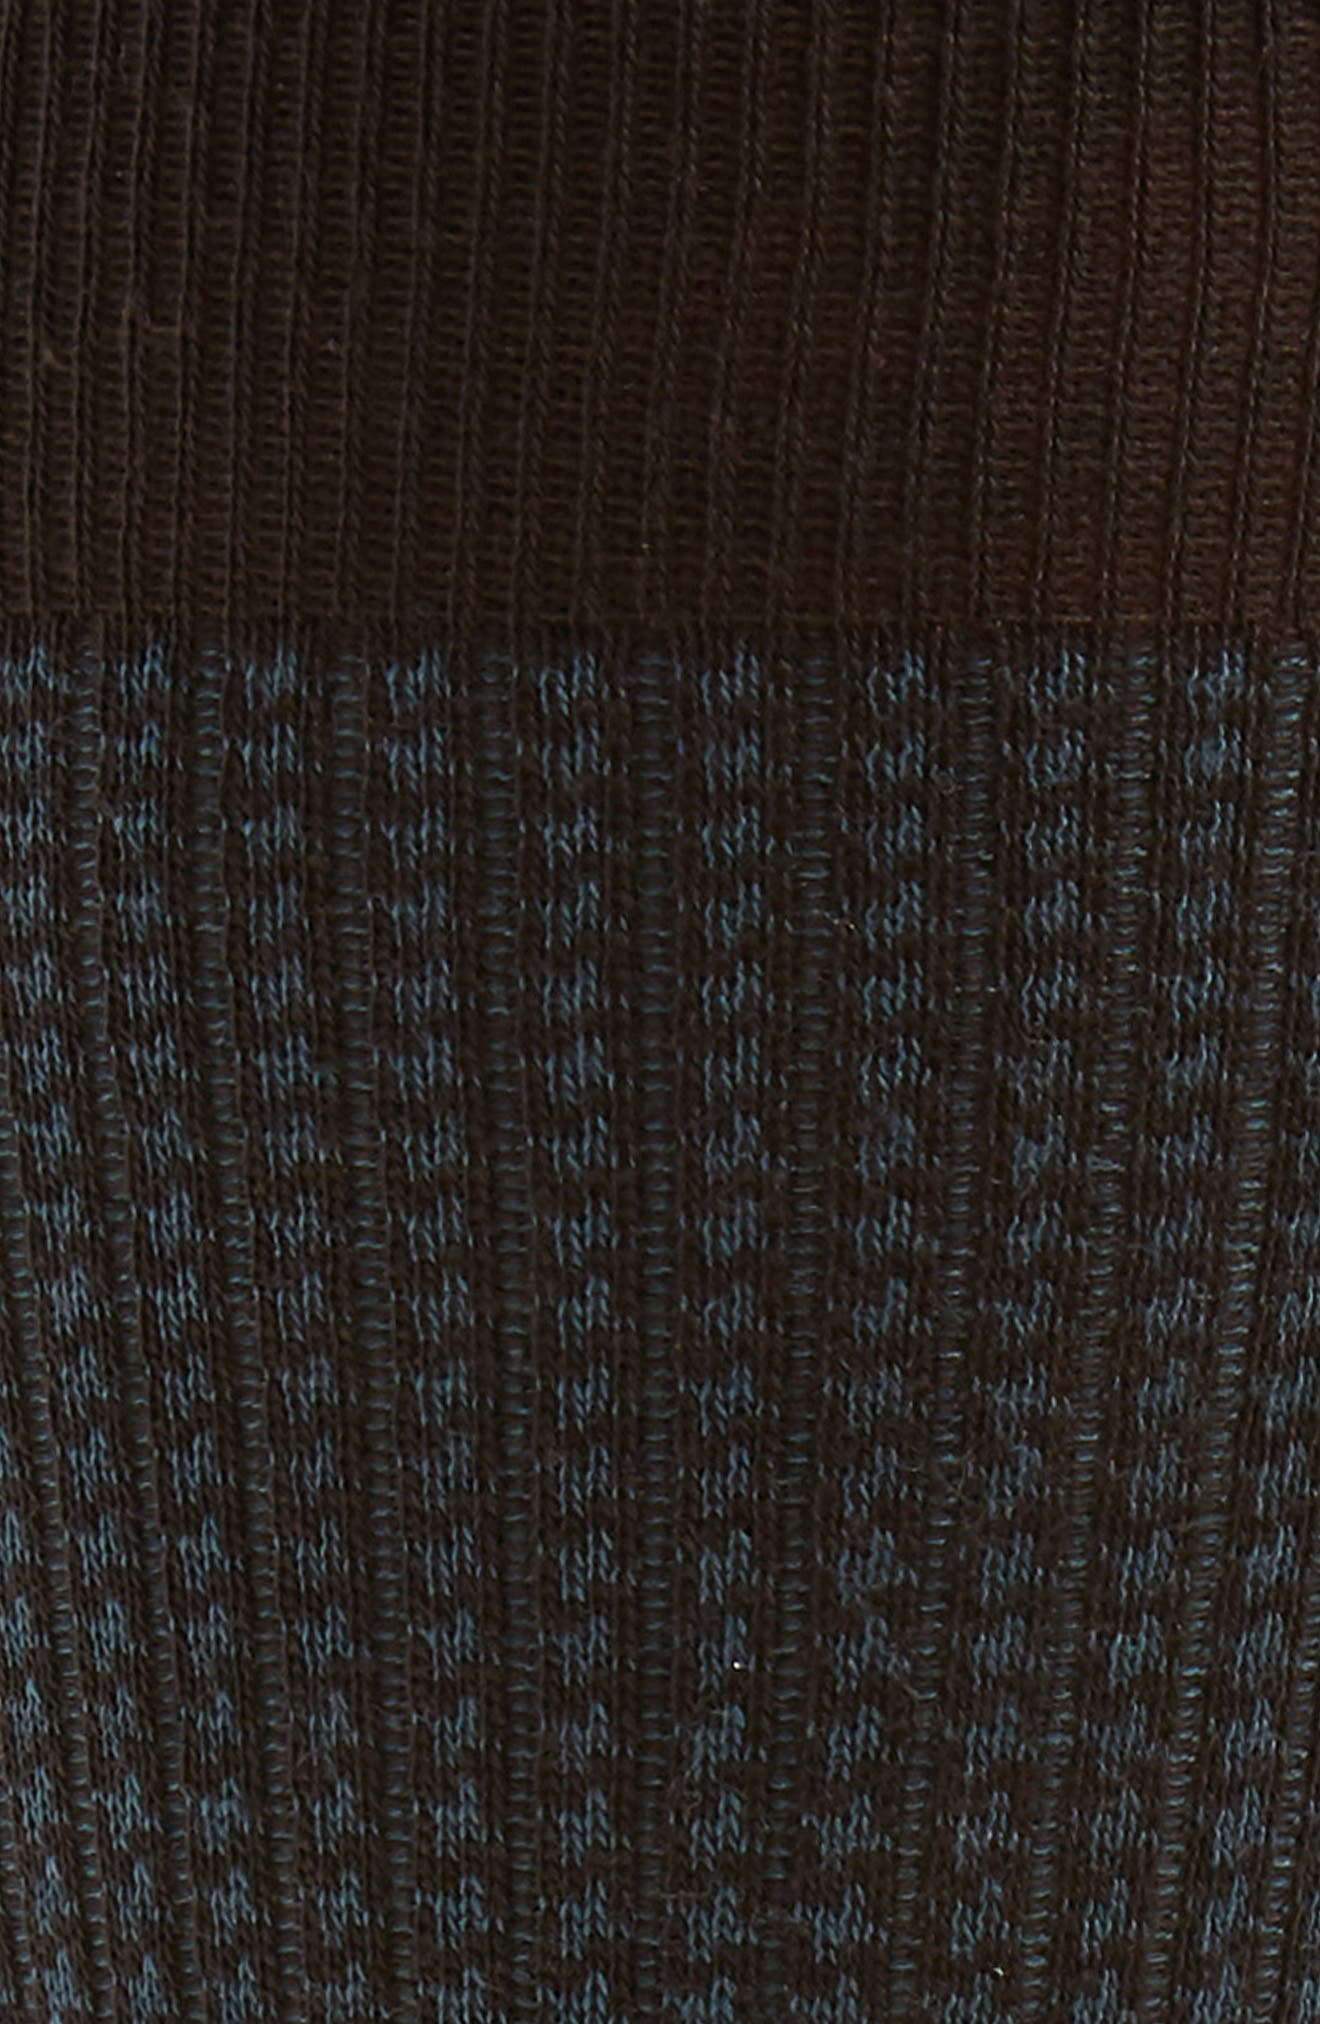 Houndstooth Wool Blend Socks,                             Alternate thumbnail 2, color,                             CHOCOLATE